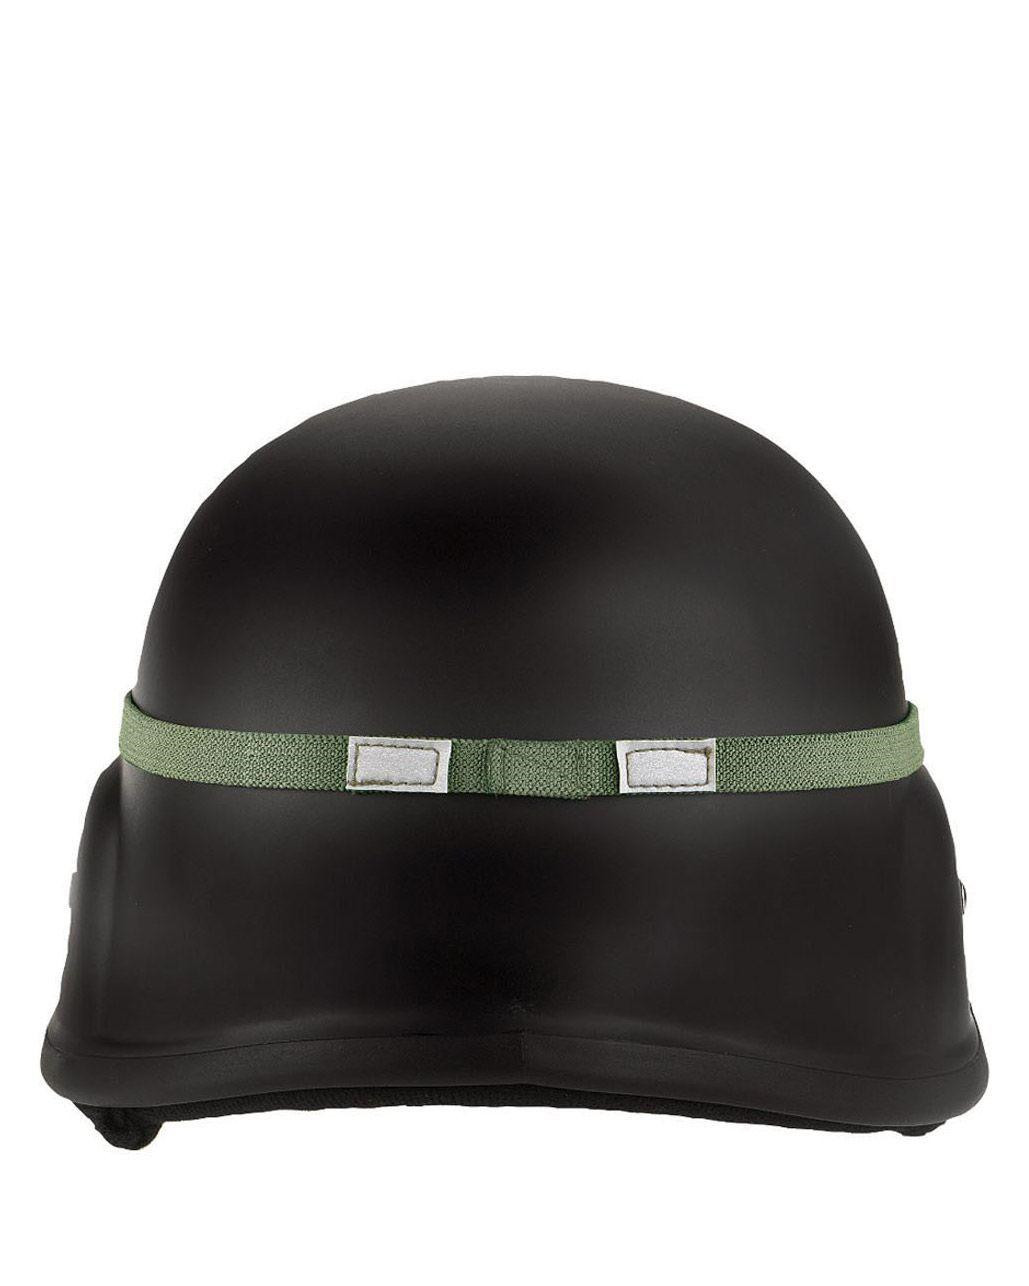 Image of   Rothco G.I. Type Cats Eye Helmet Bands (Blad Grøn, One Size)